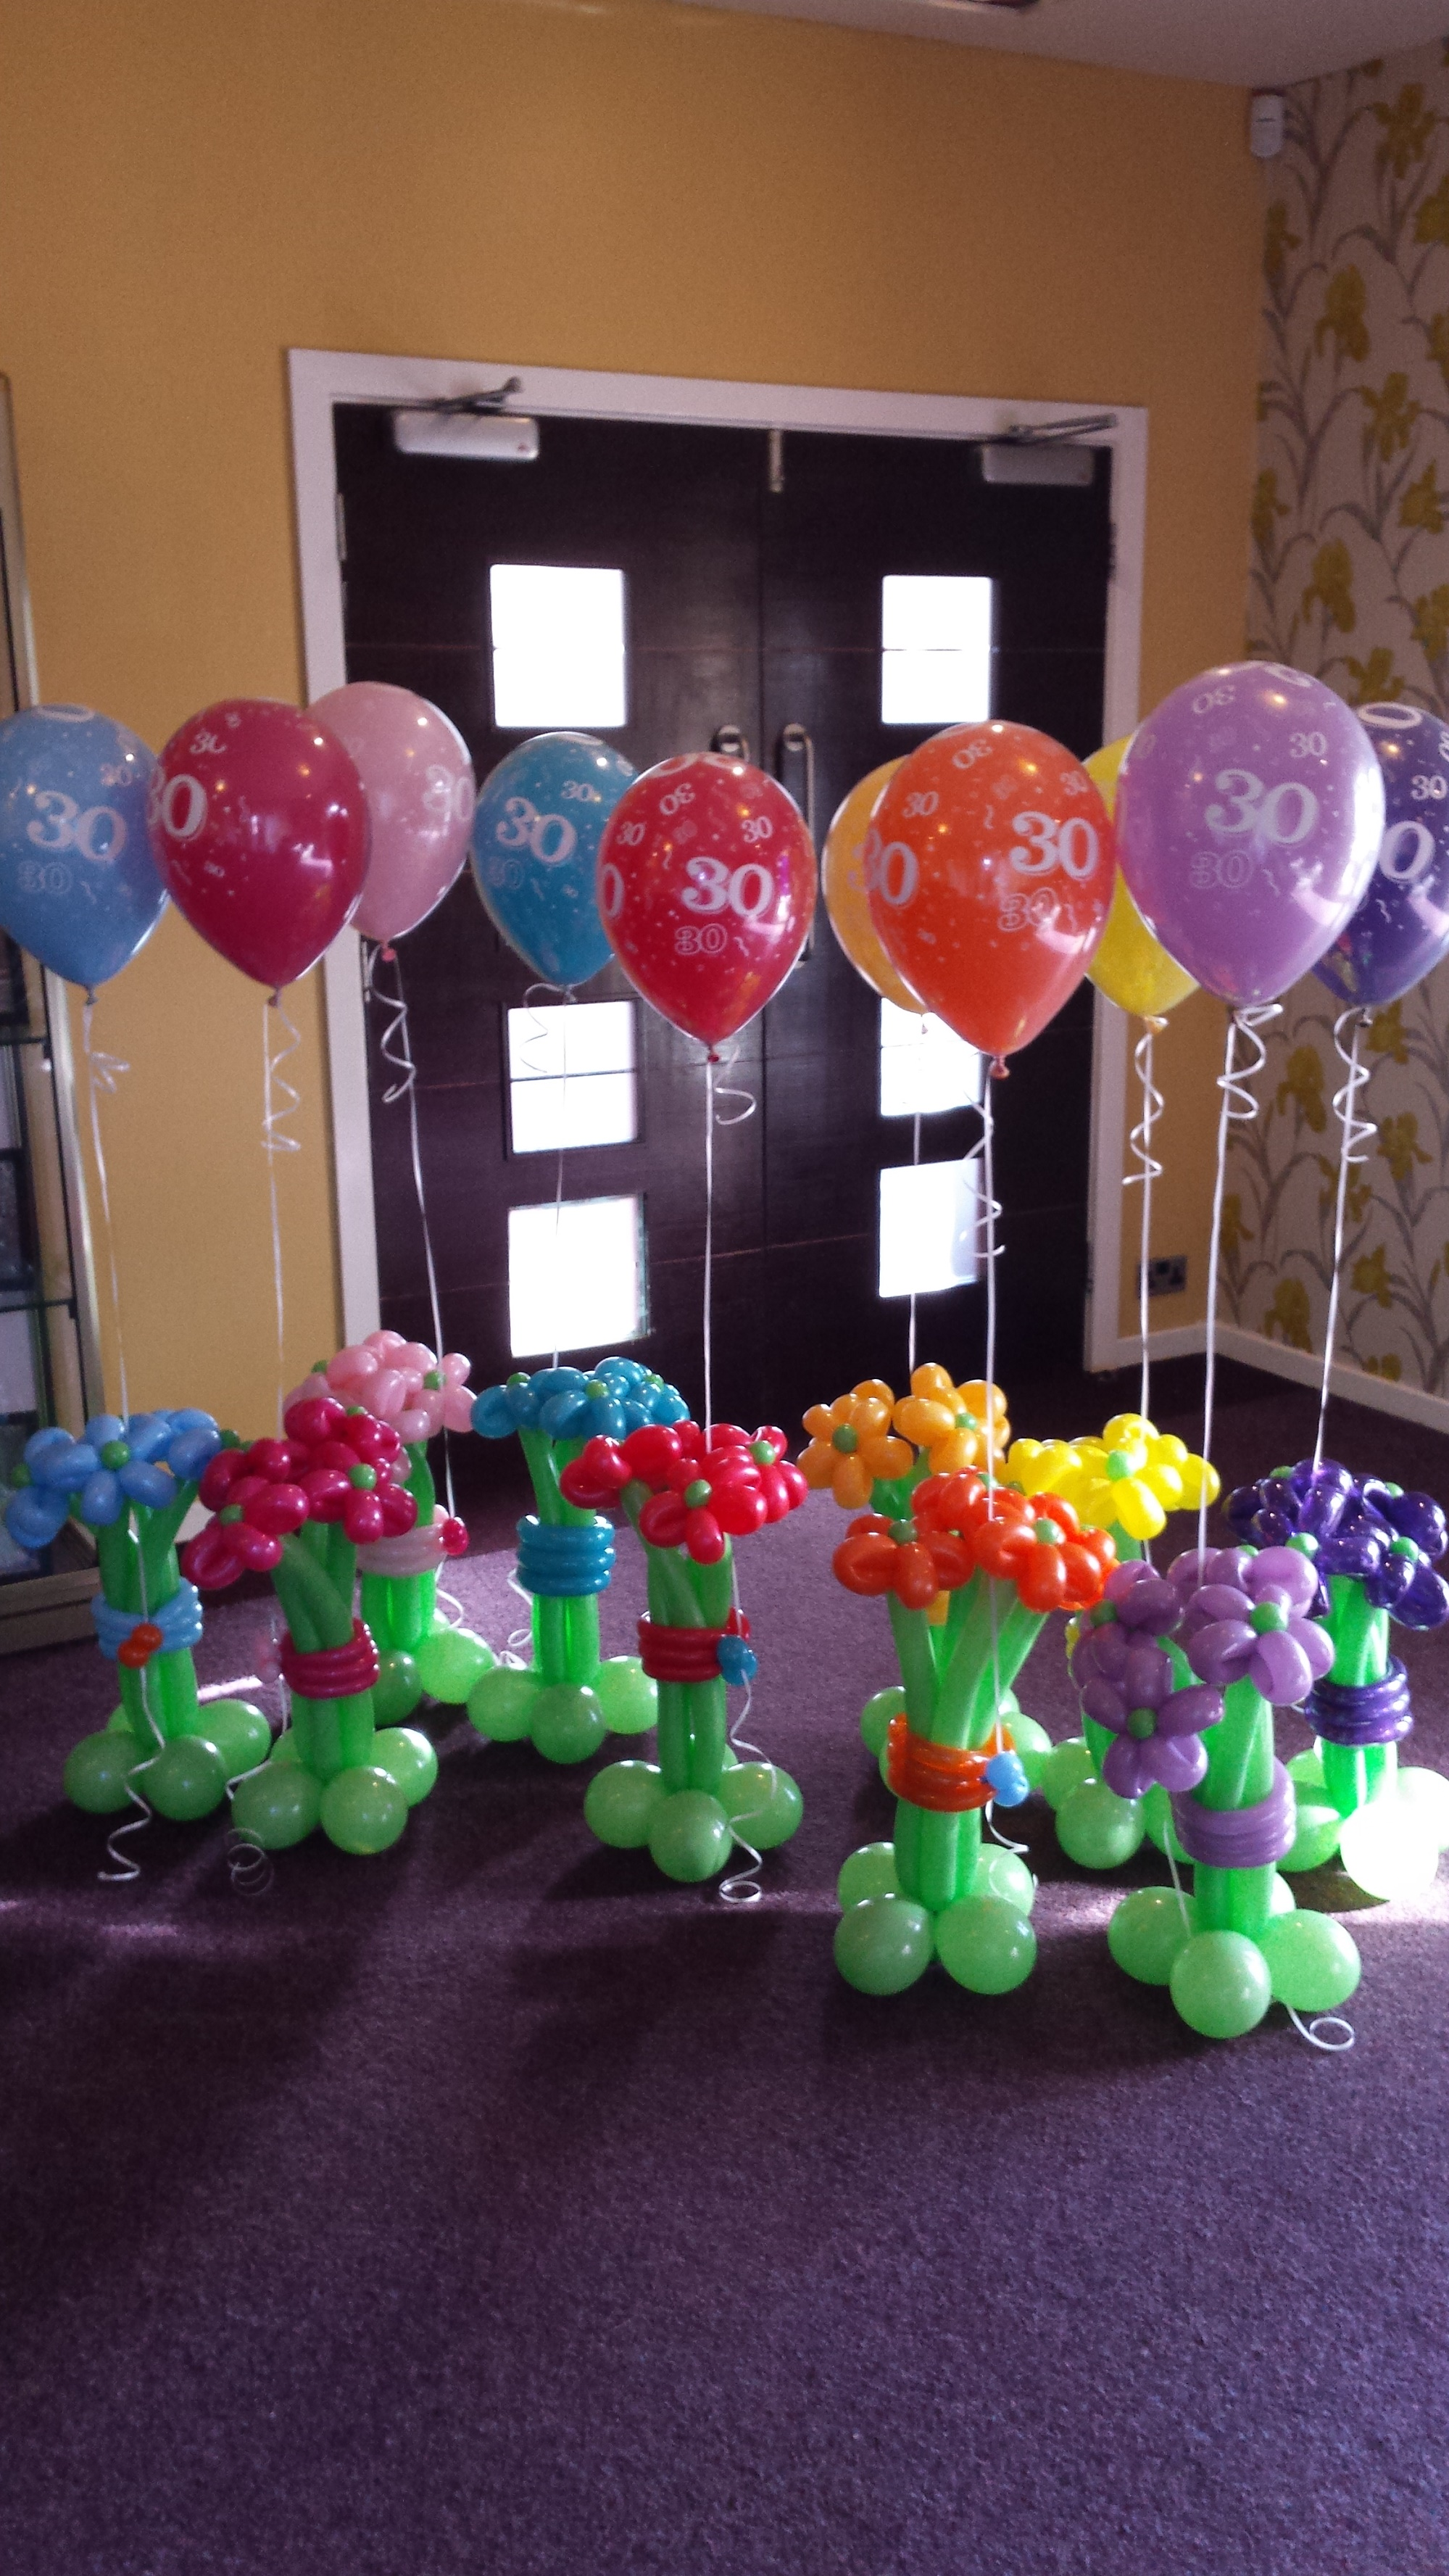 Balloon Flower Bouquets for a 30th Birthday Party - Balloon Bliss Hull.